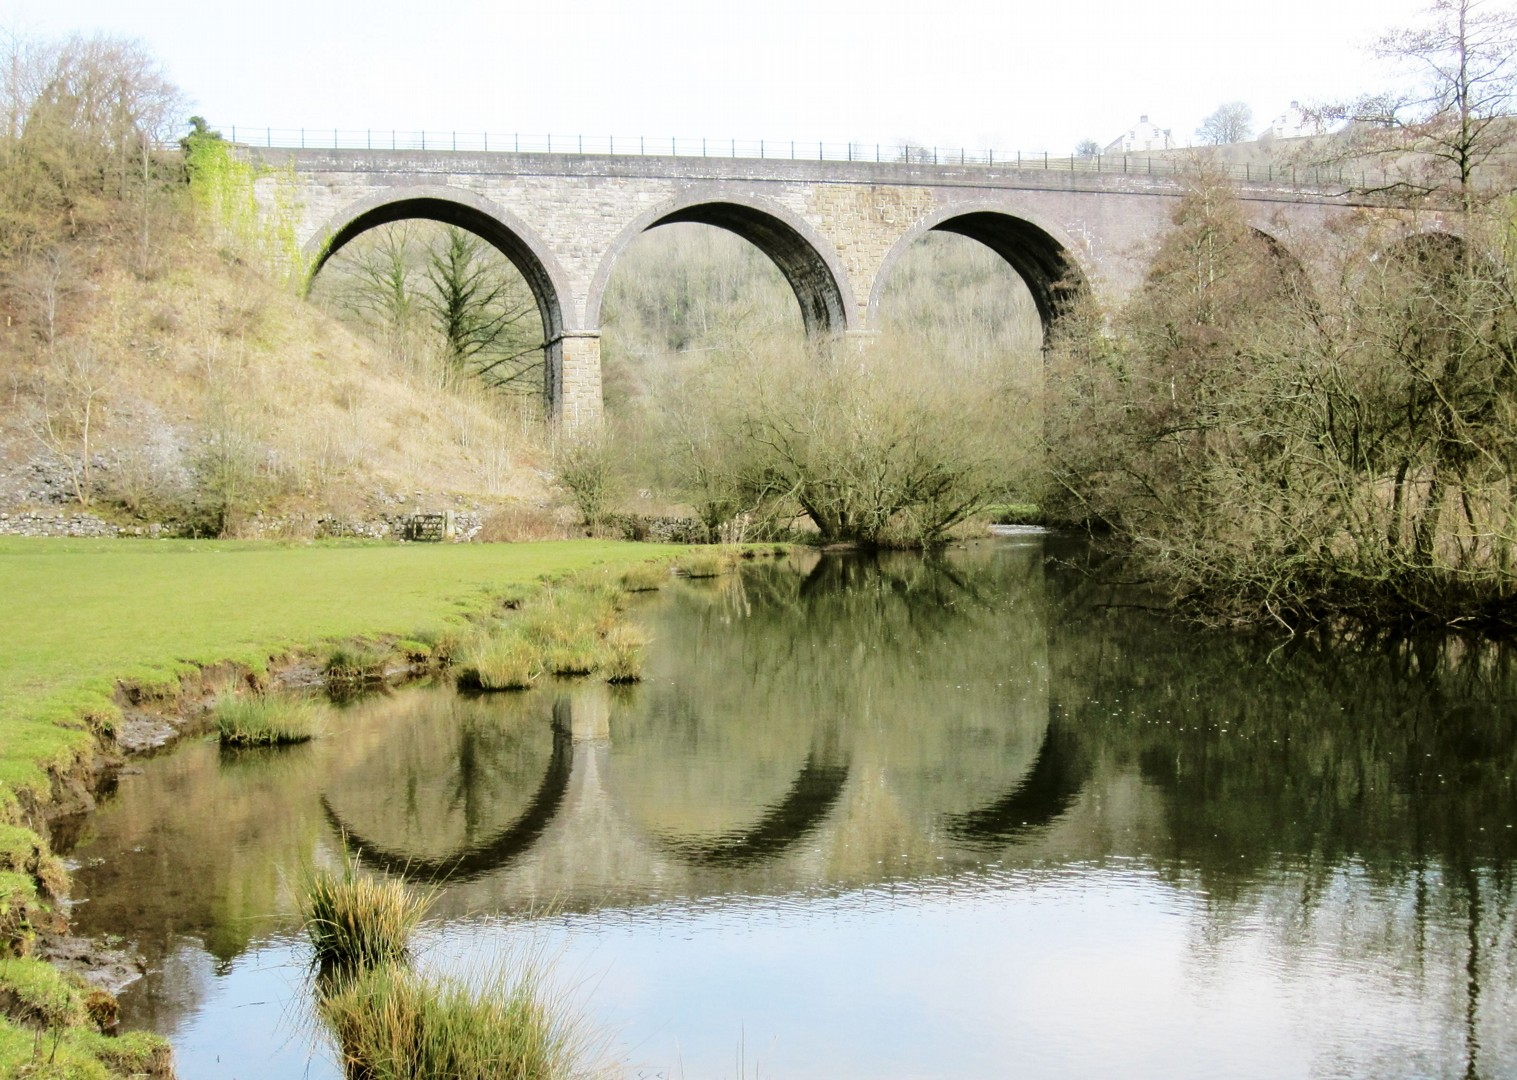 IMG_4465.JPG - UK - Derbyshire Dales - Dovedale - Self-Guided Leisure Cycling Holiday - Leisure Cycling